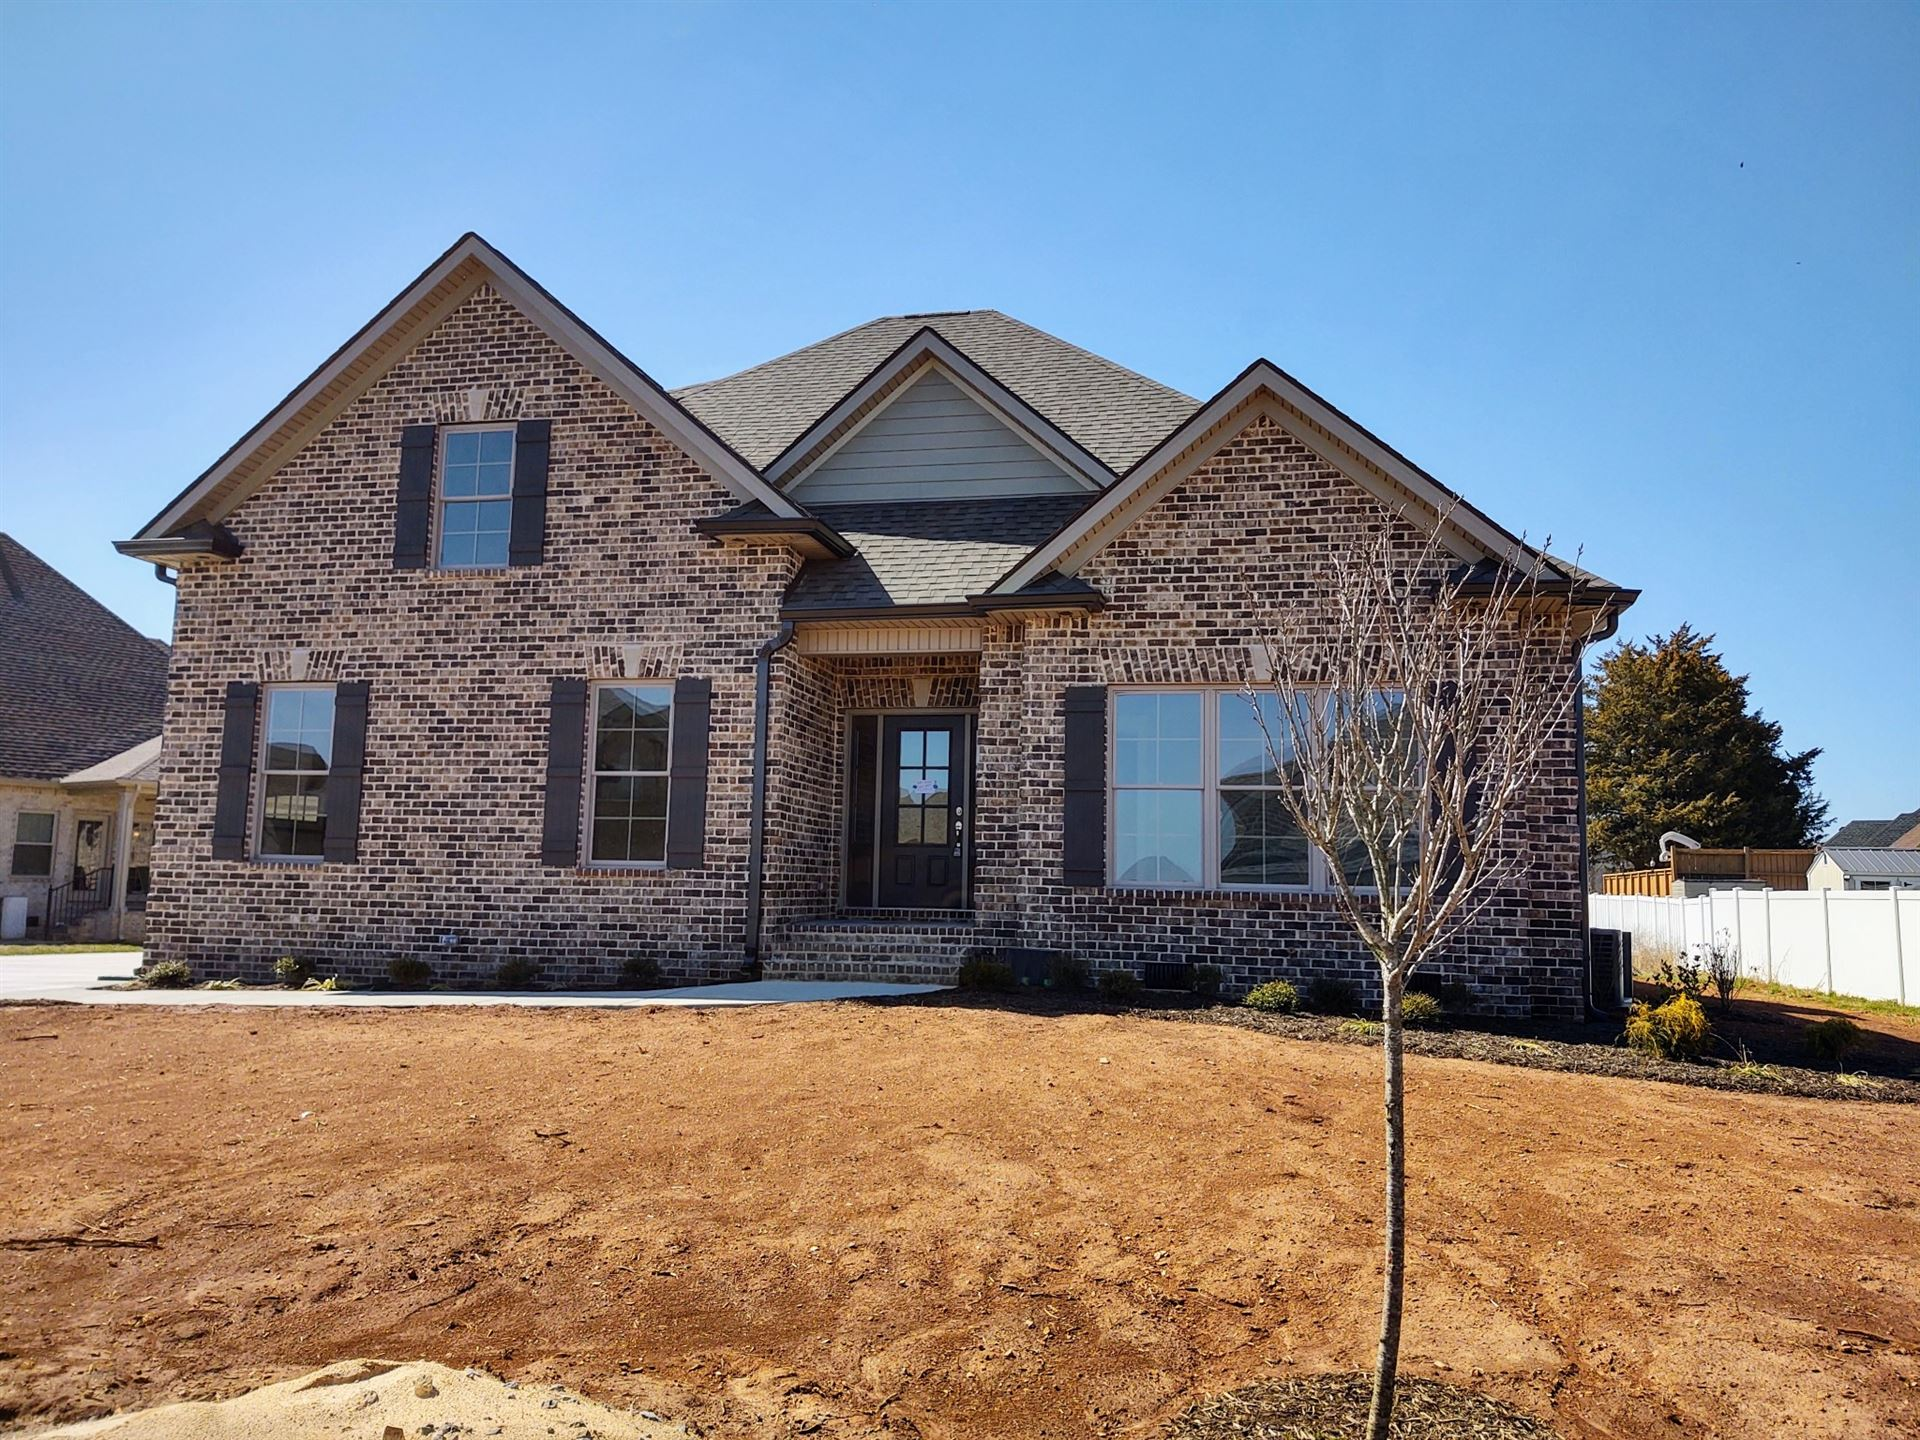 2613 Rocking Horse Ln, Murfreesboro, TN 37130 - MLS#: 2233226